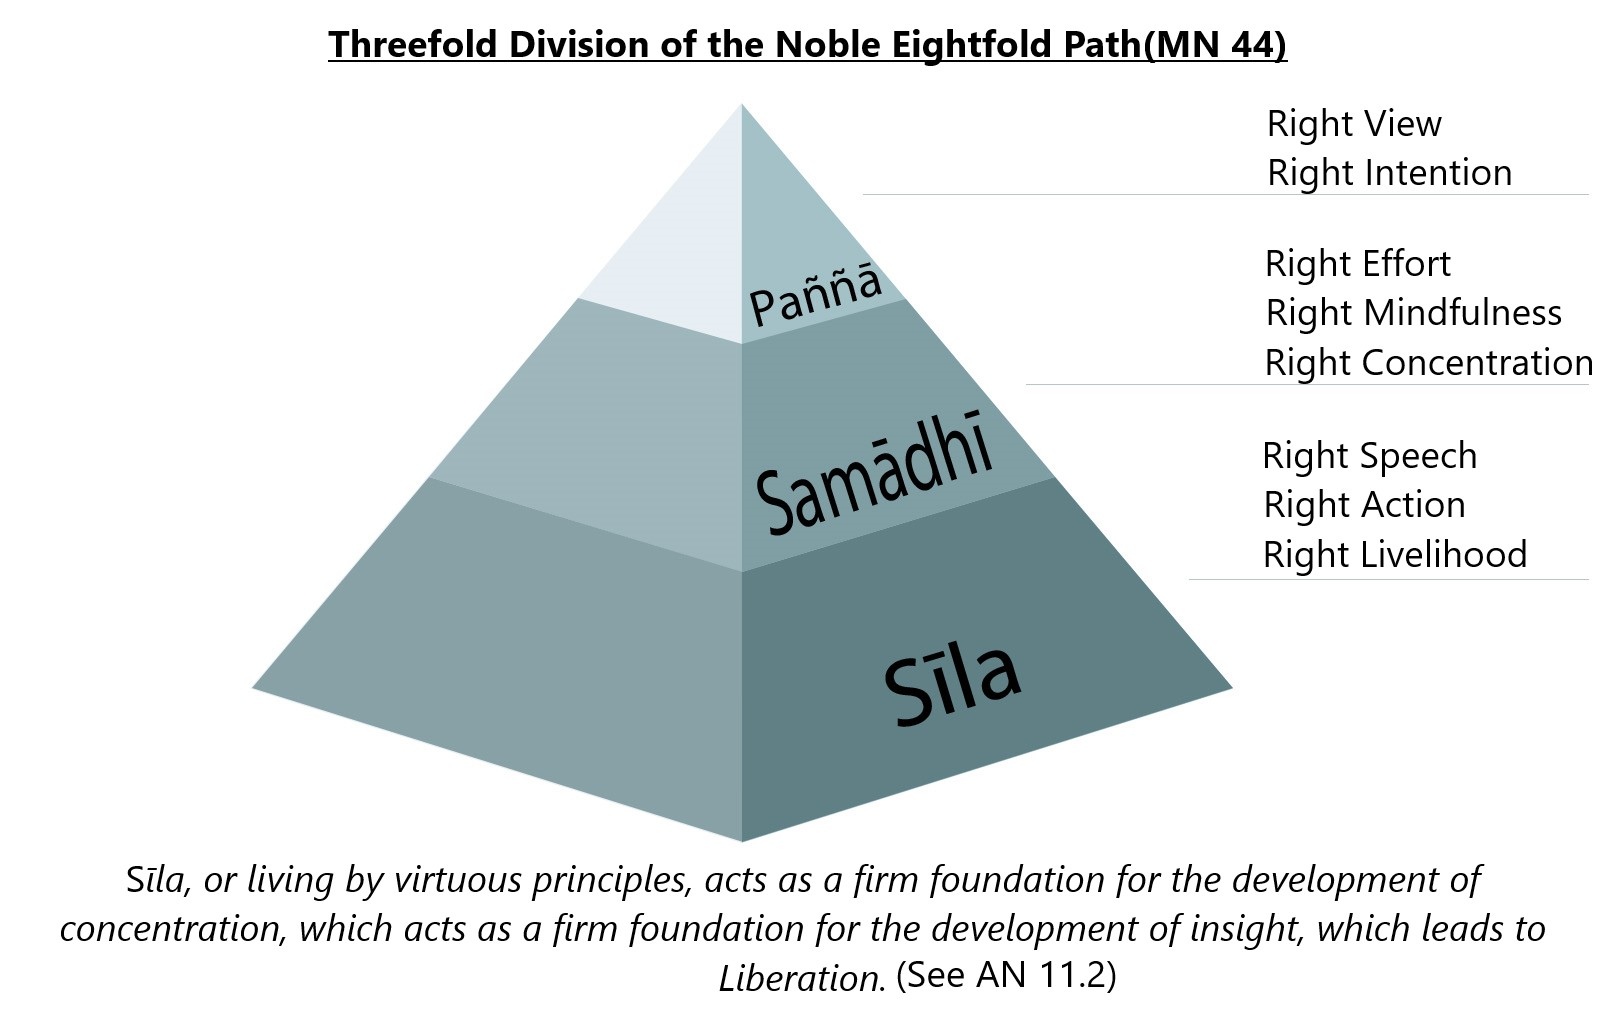 Threefold Division Of The Noble Eightfold Path Graphic